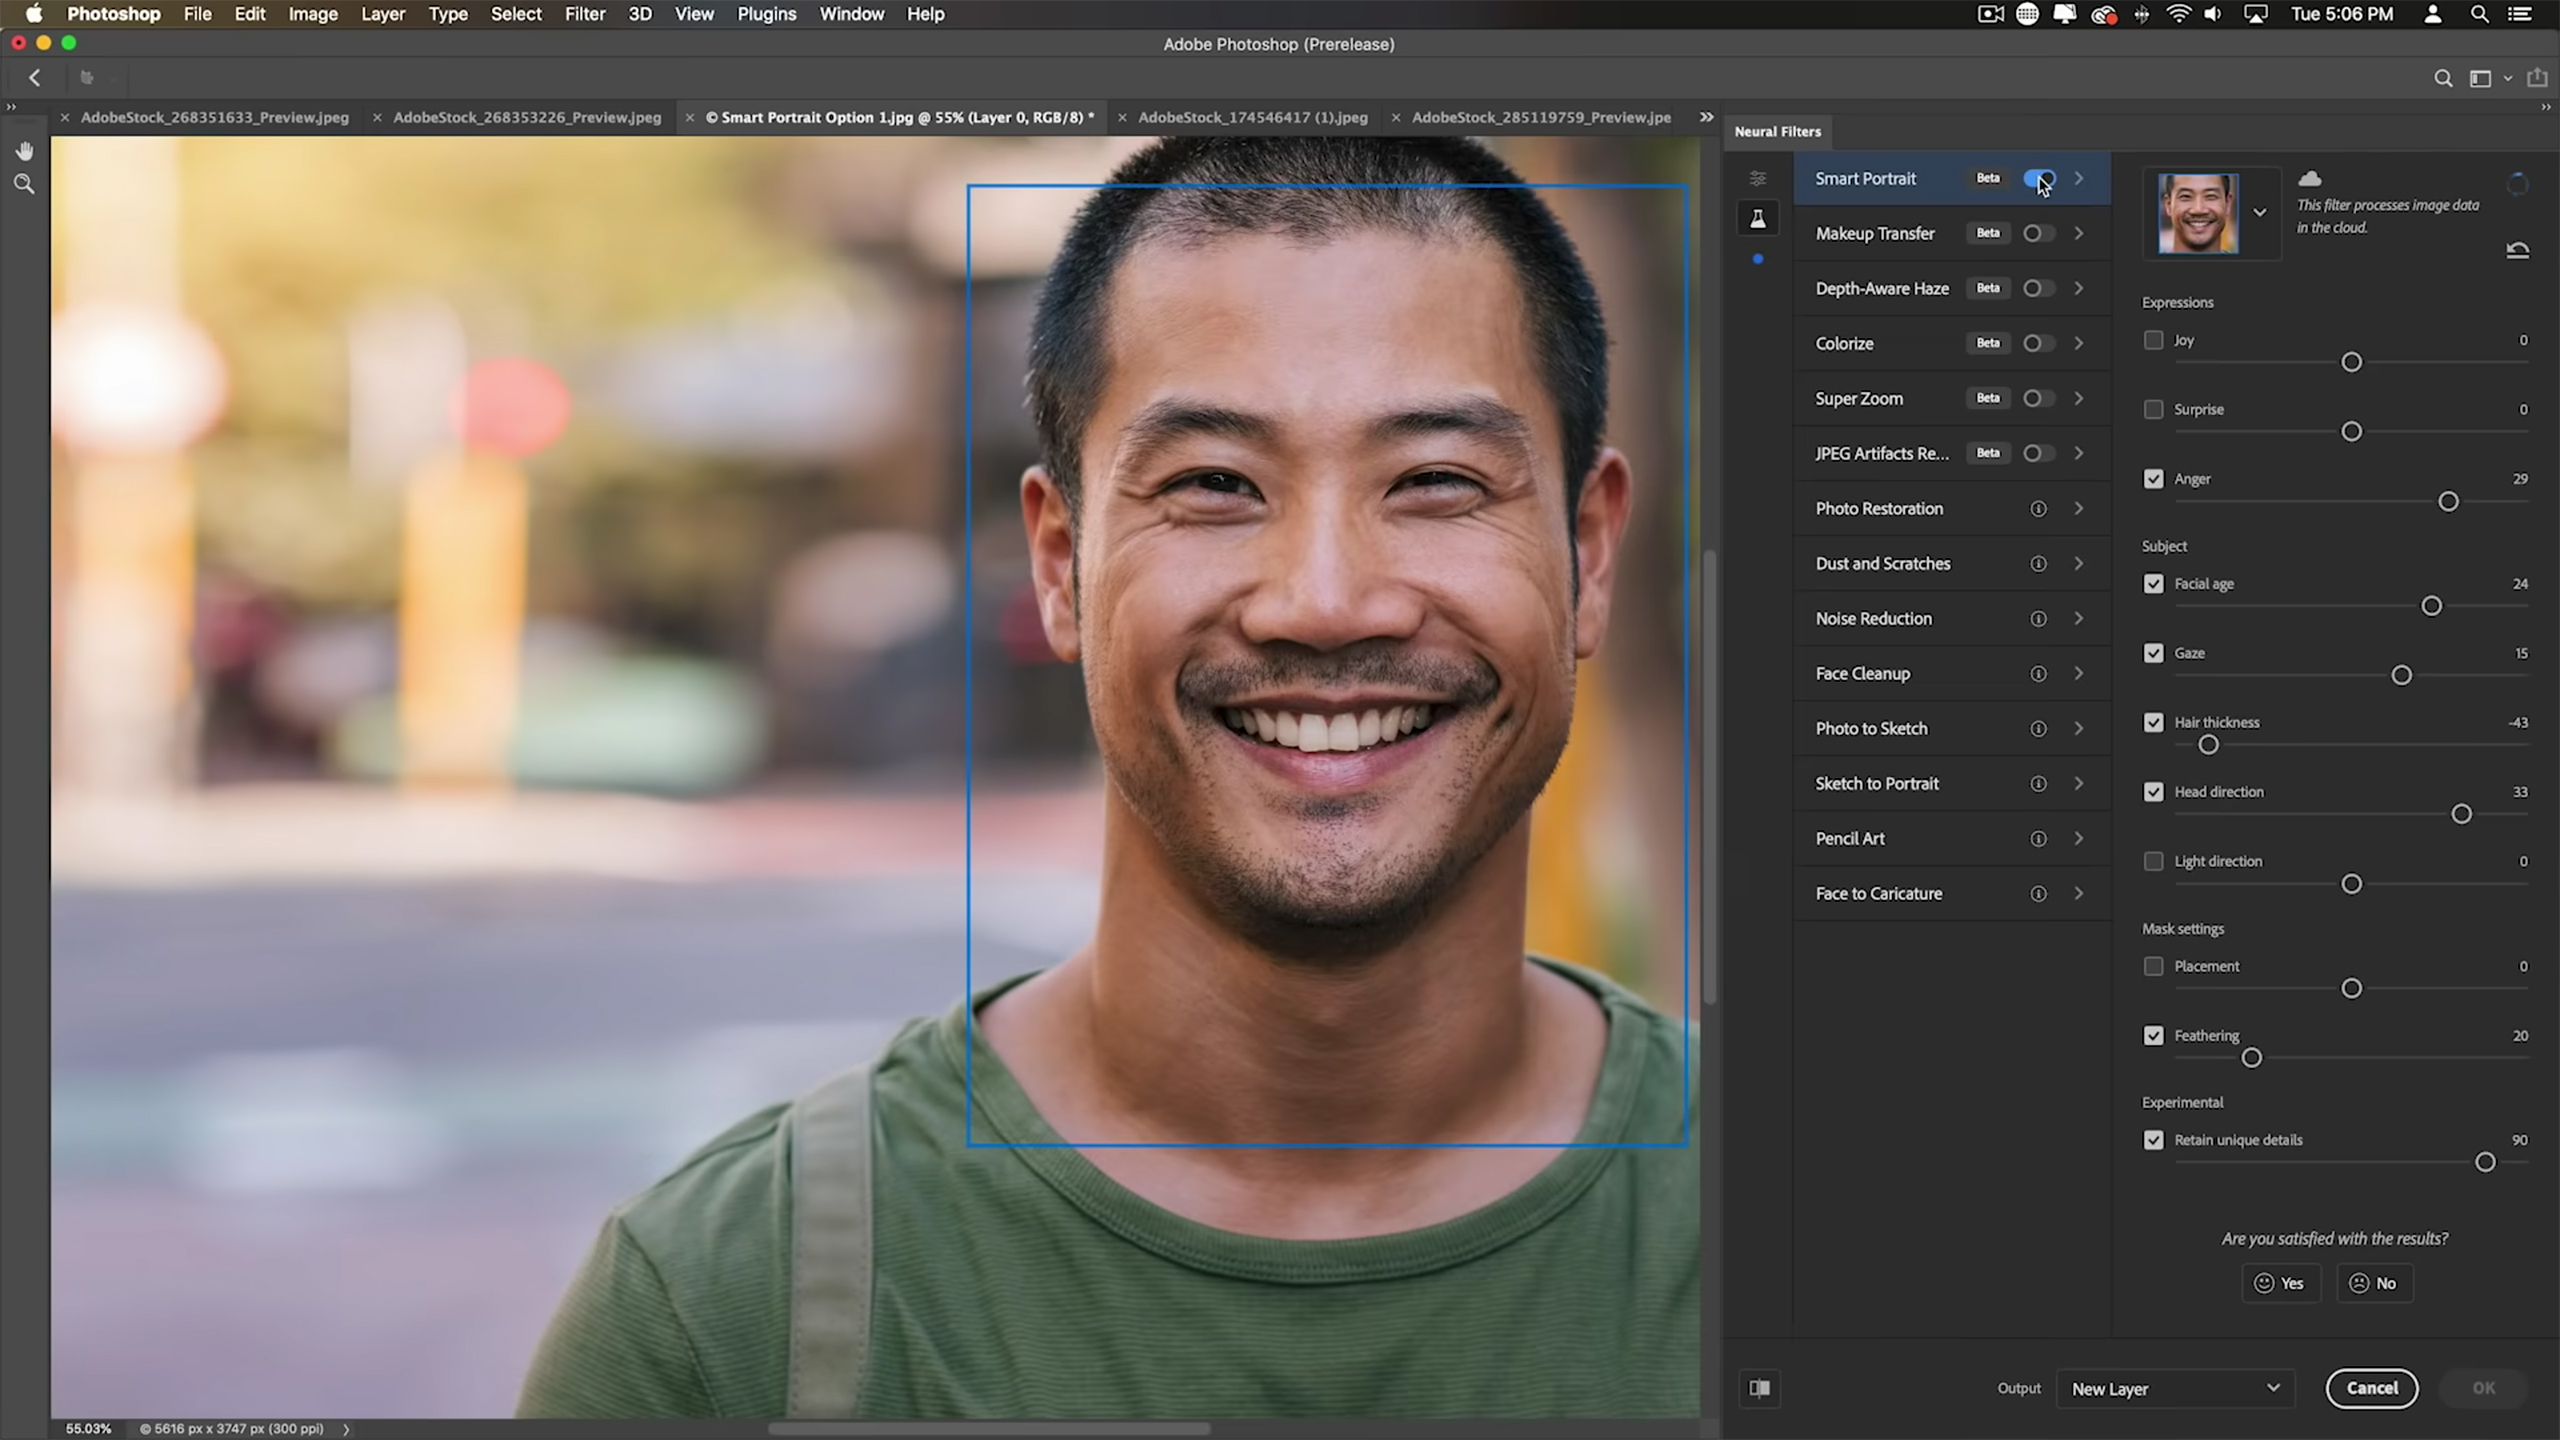 With Photoshop 2021, Adobe fully embraces the future of photo editing | Photofocus